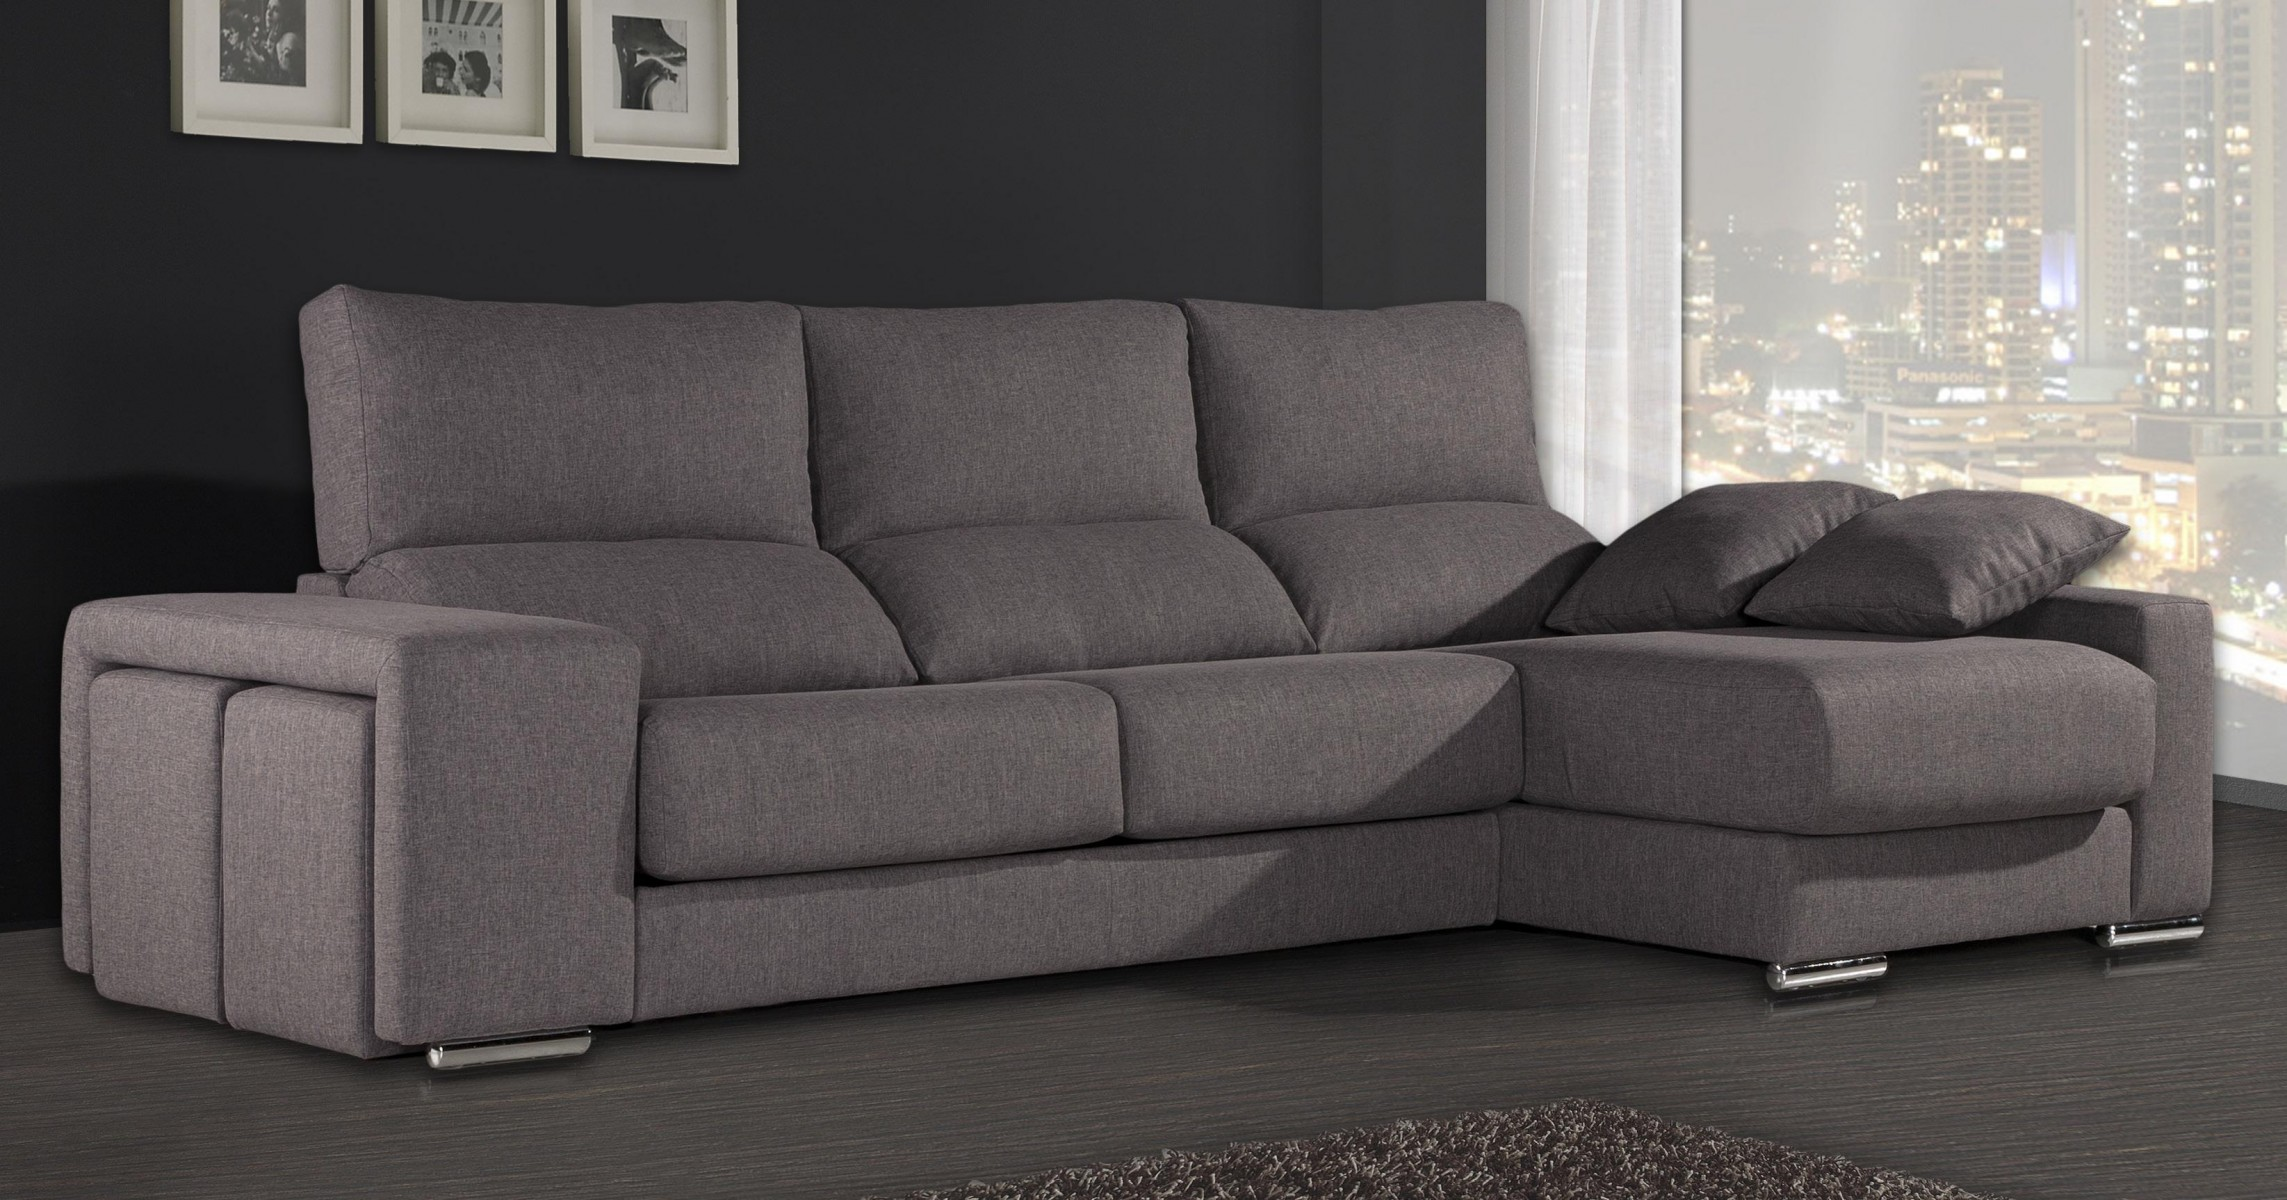 Sof s con chaise longue sof s modernos for Sofa tres plazas chaise longue